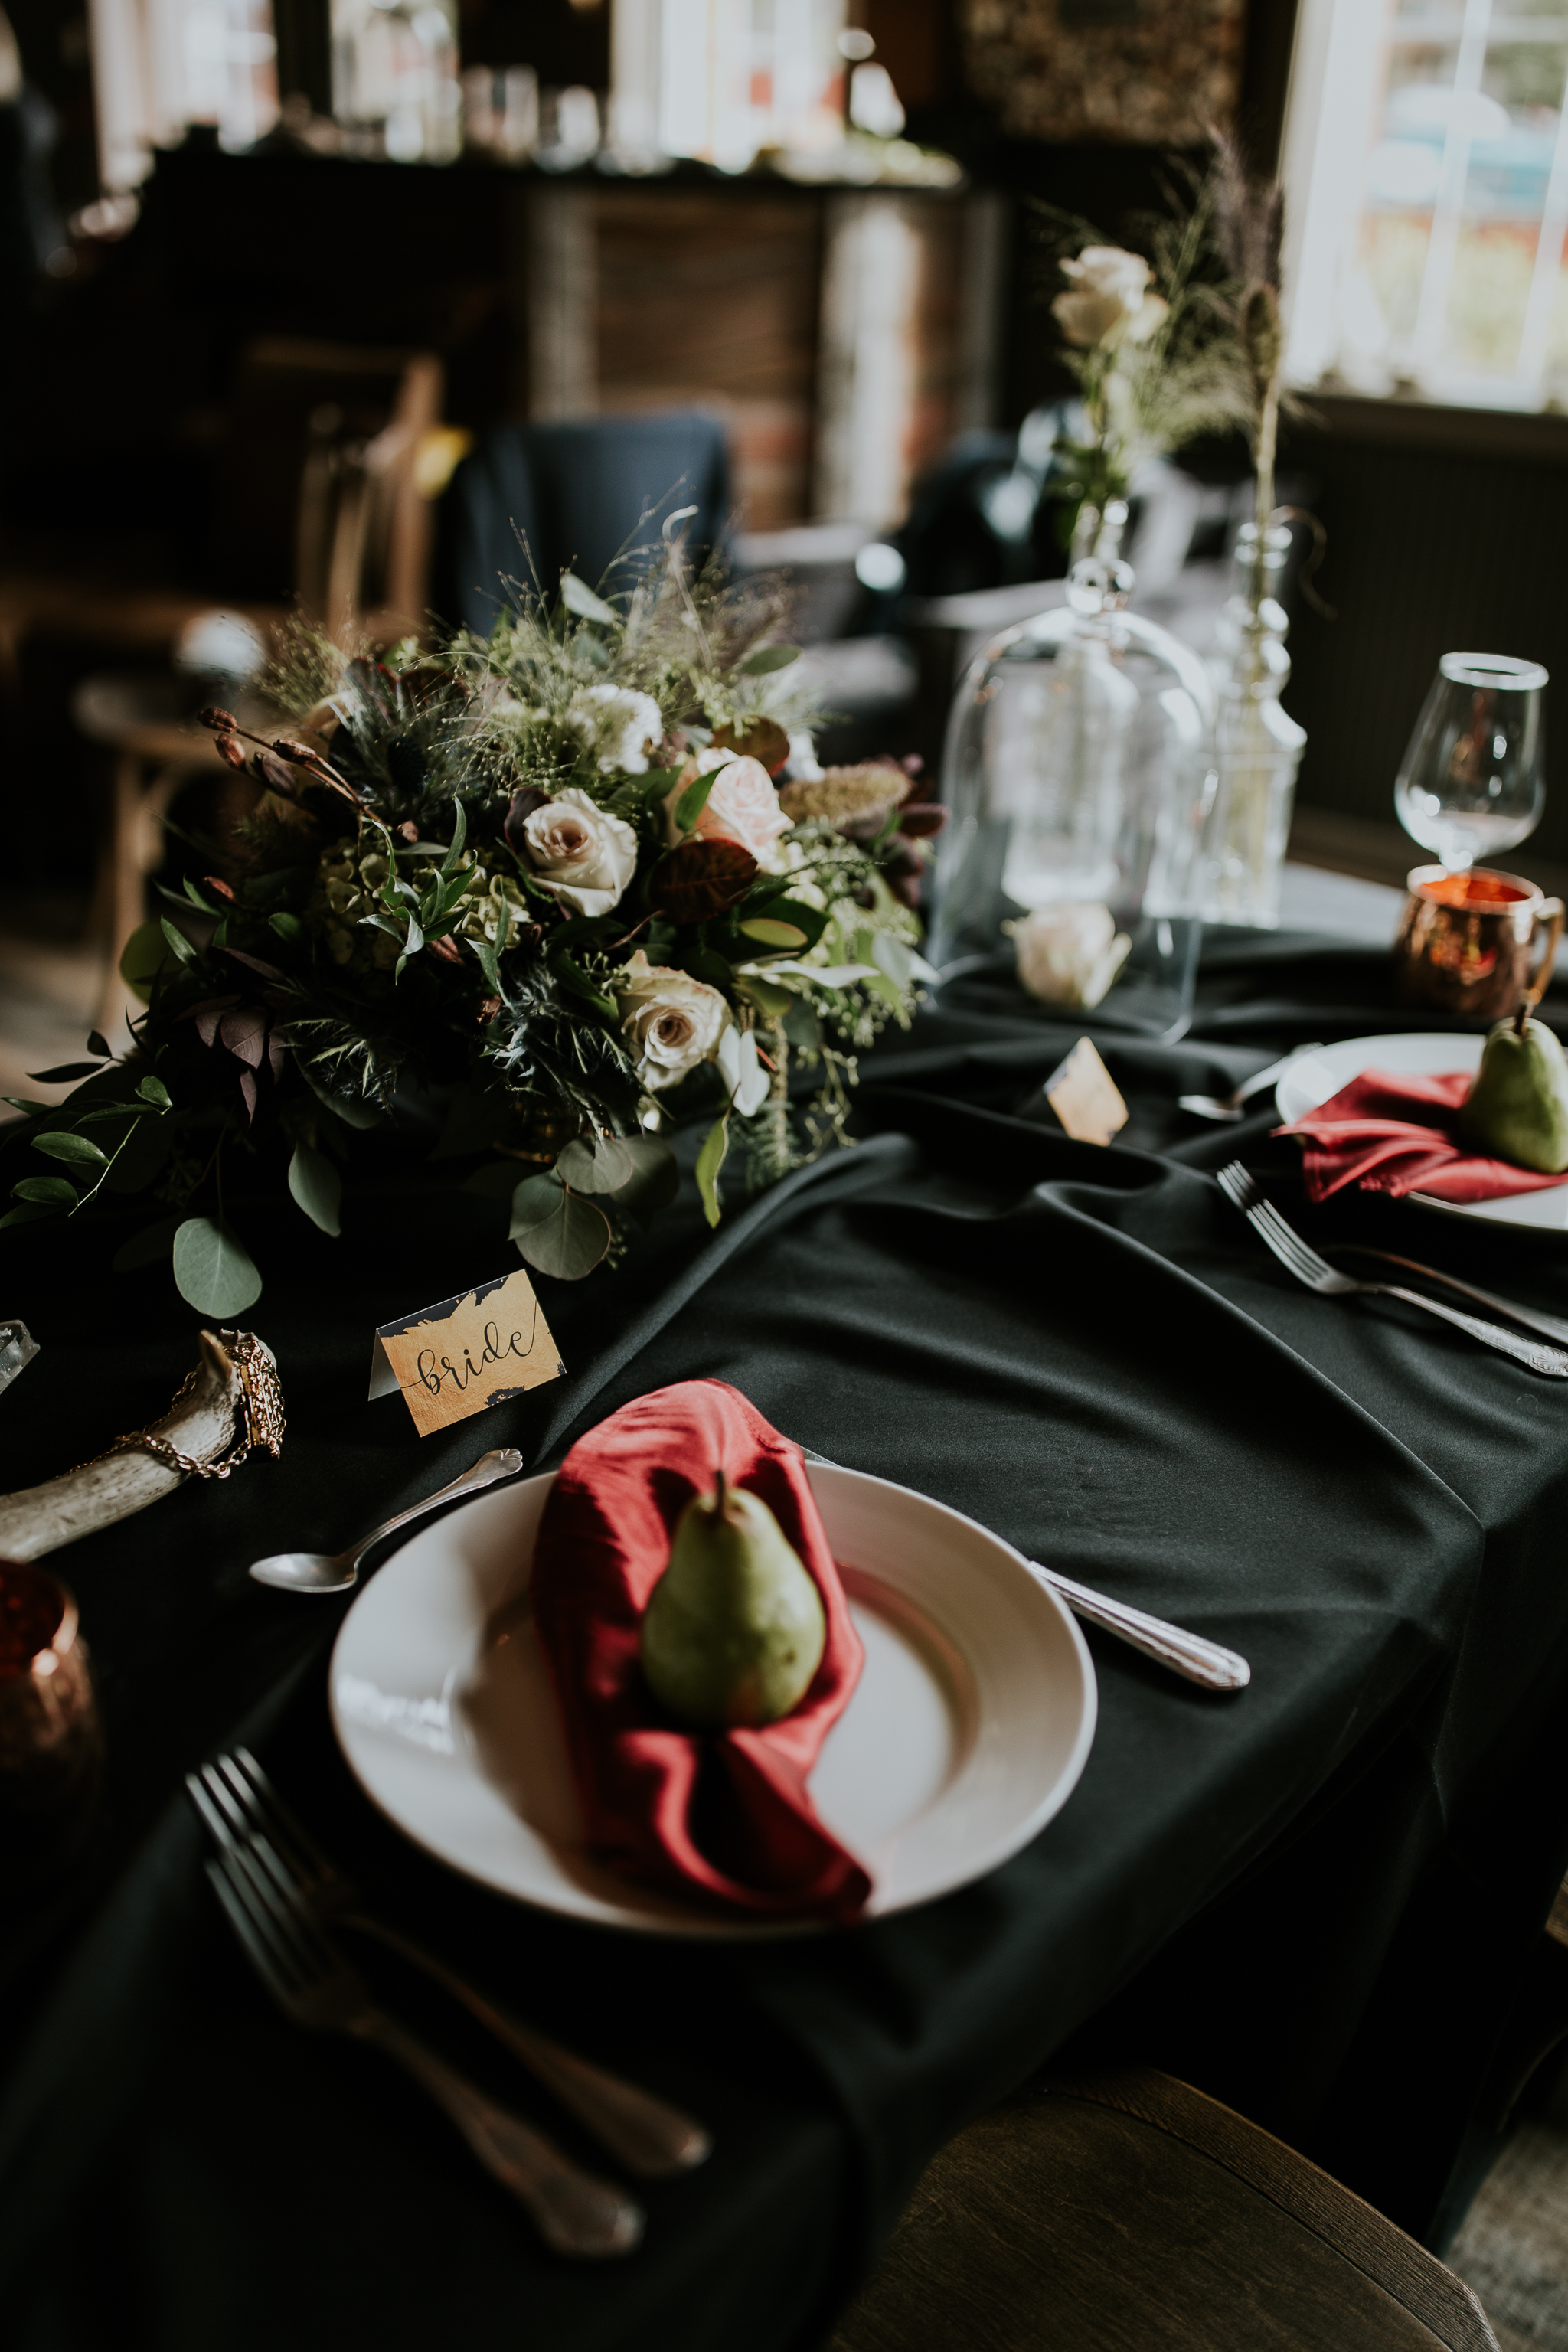 Florals and place settings for edgy creative wedding table using black, red and ggold